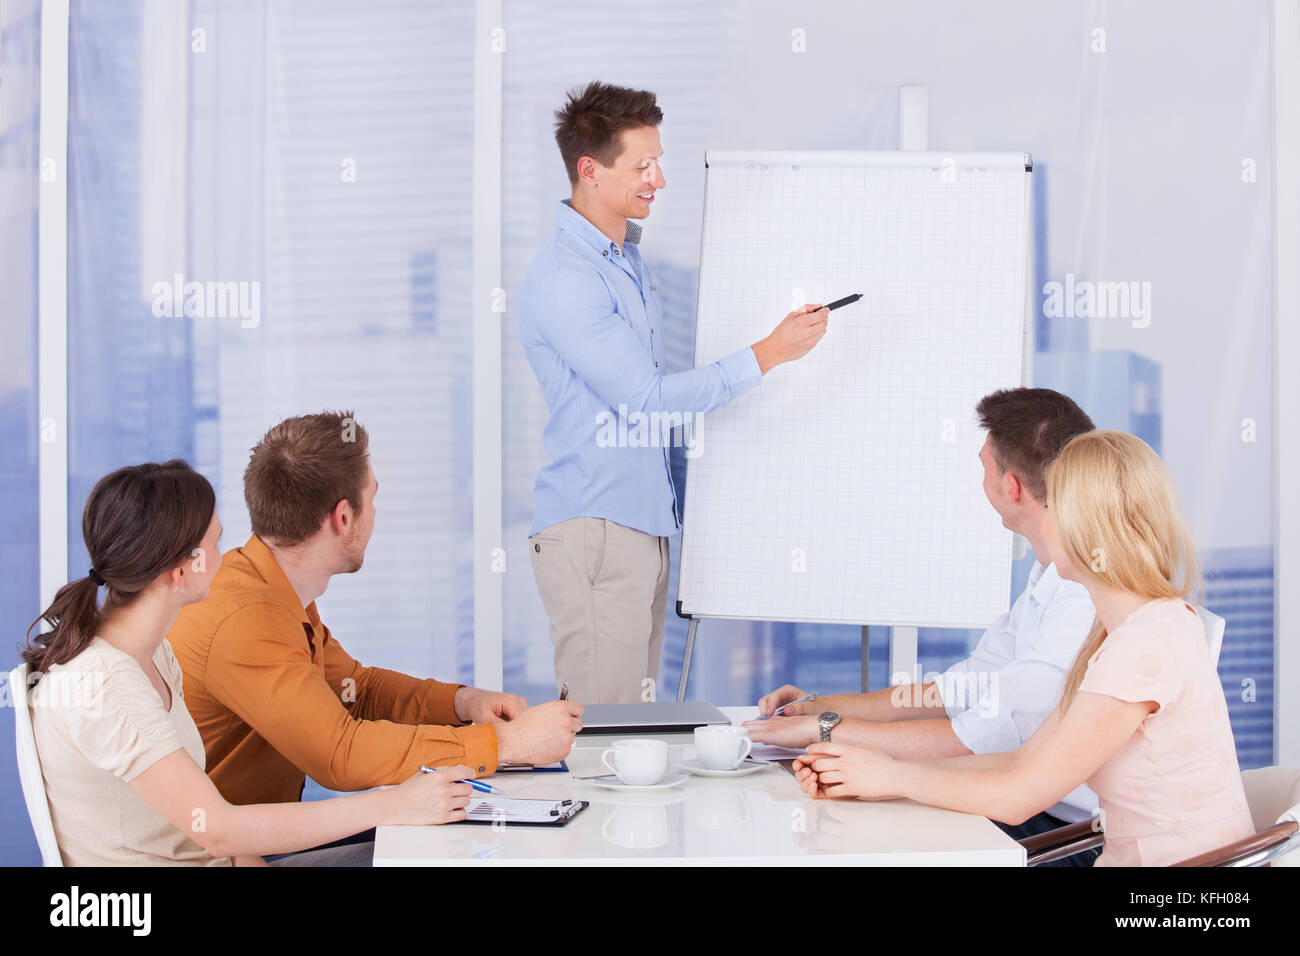 Young businessman giving presentation to colleagues in office - Stock Image